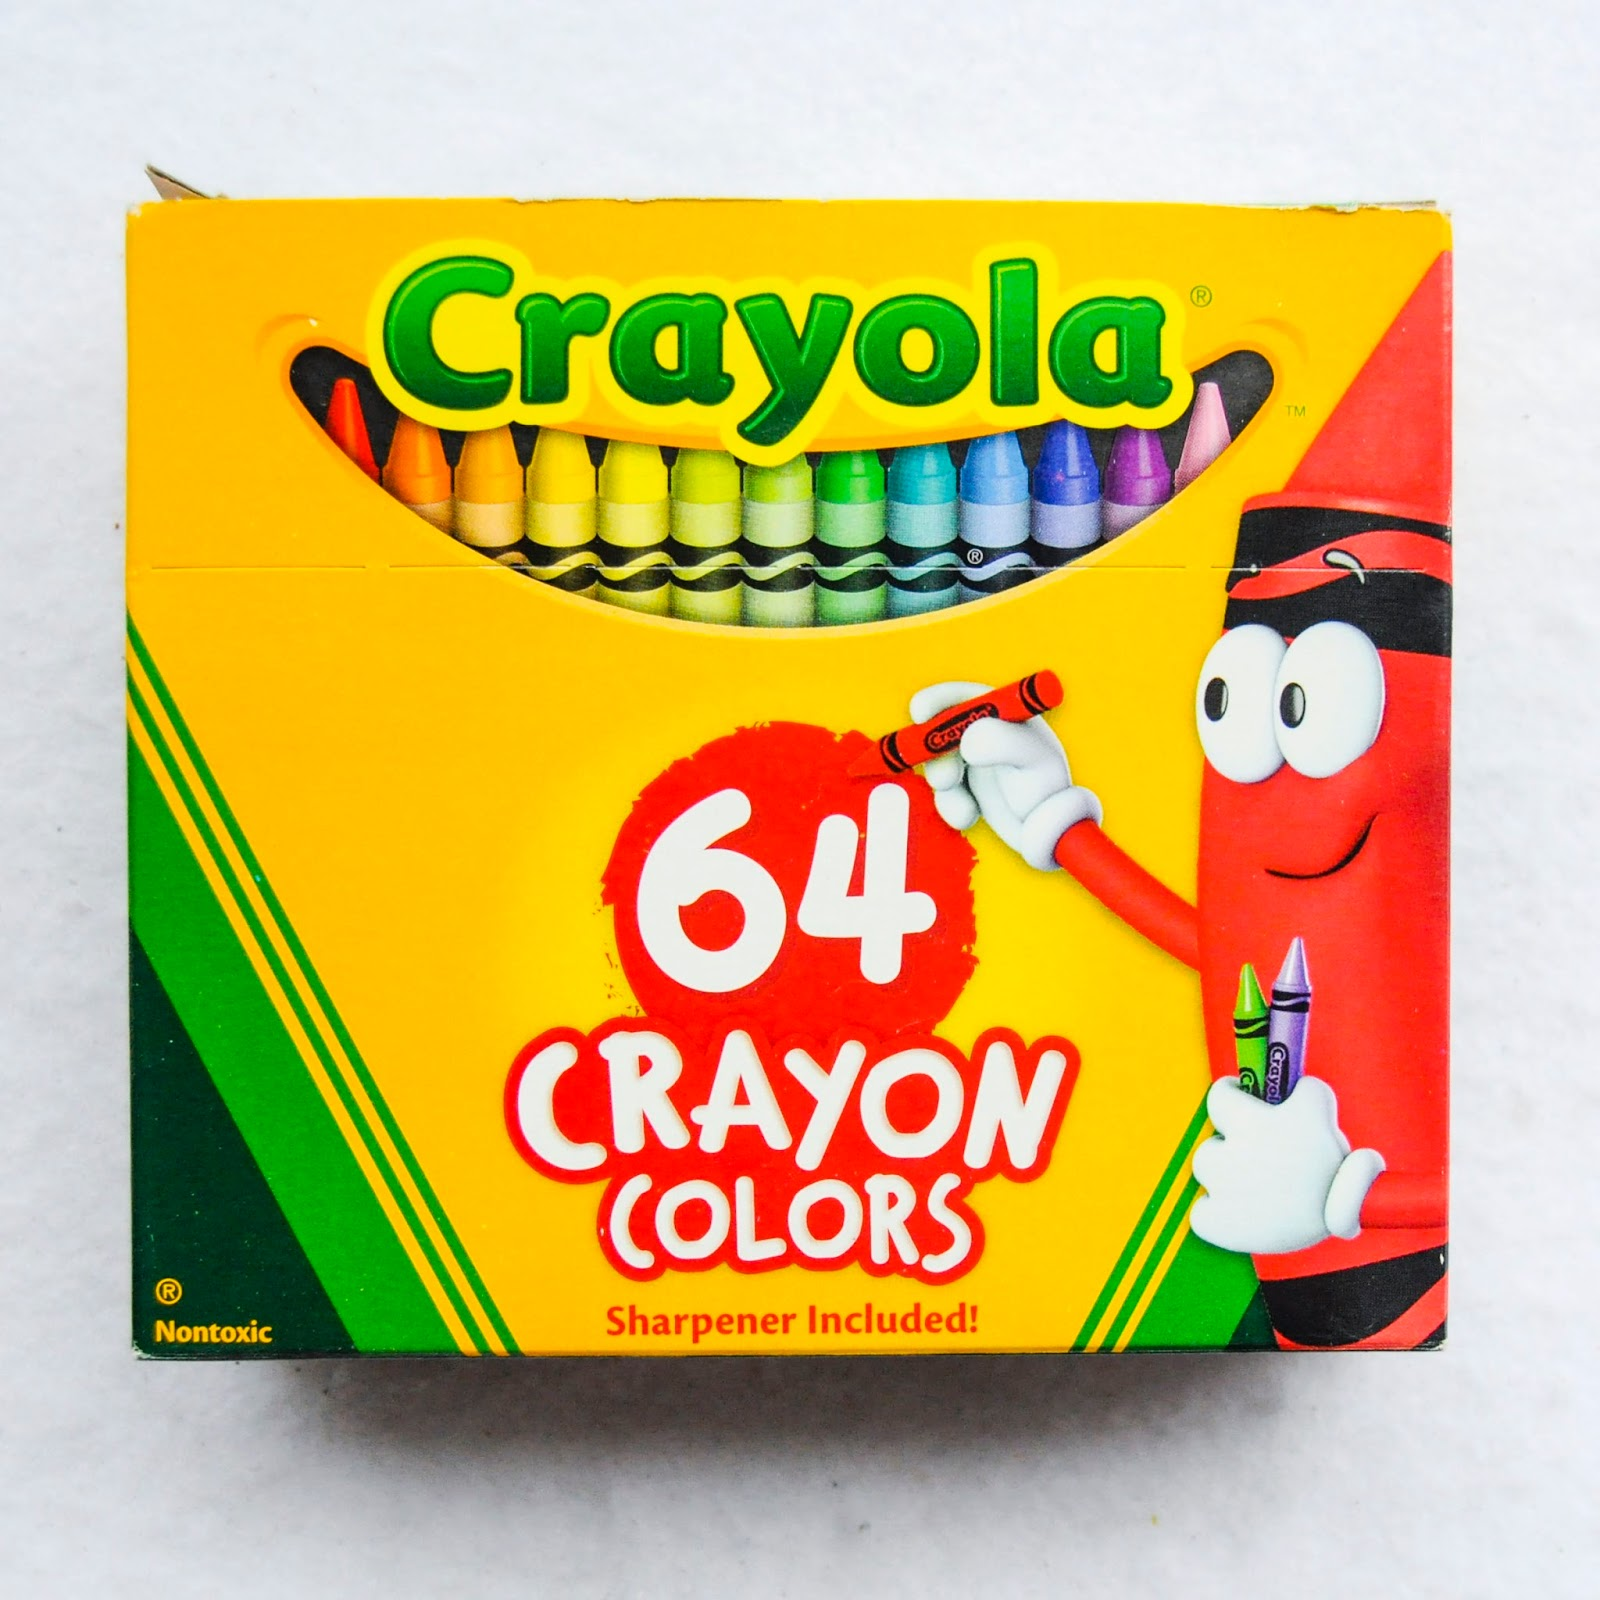 64 Count Crayola Crayons What S Inside The Box